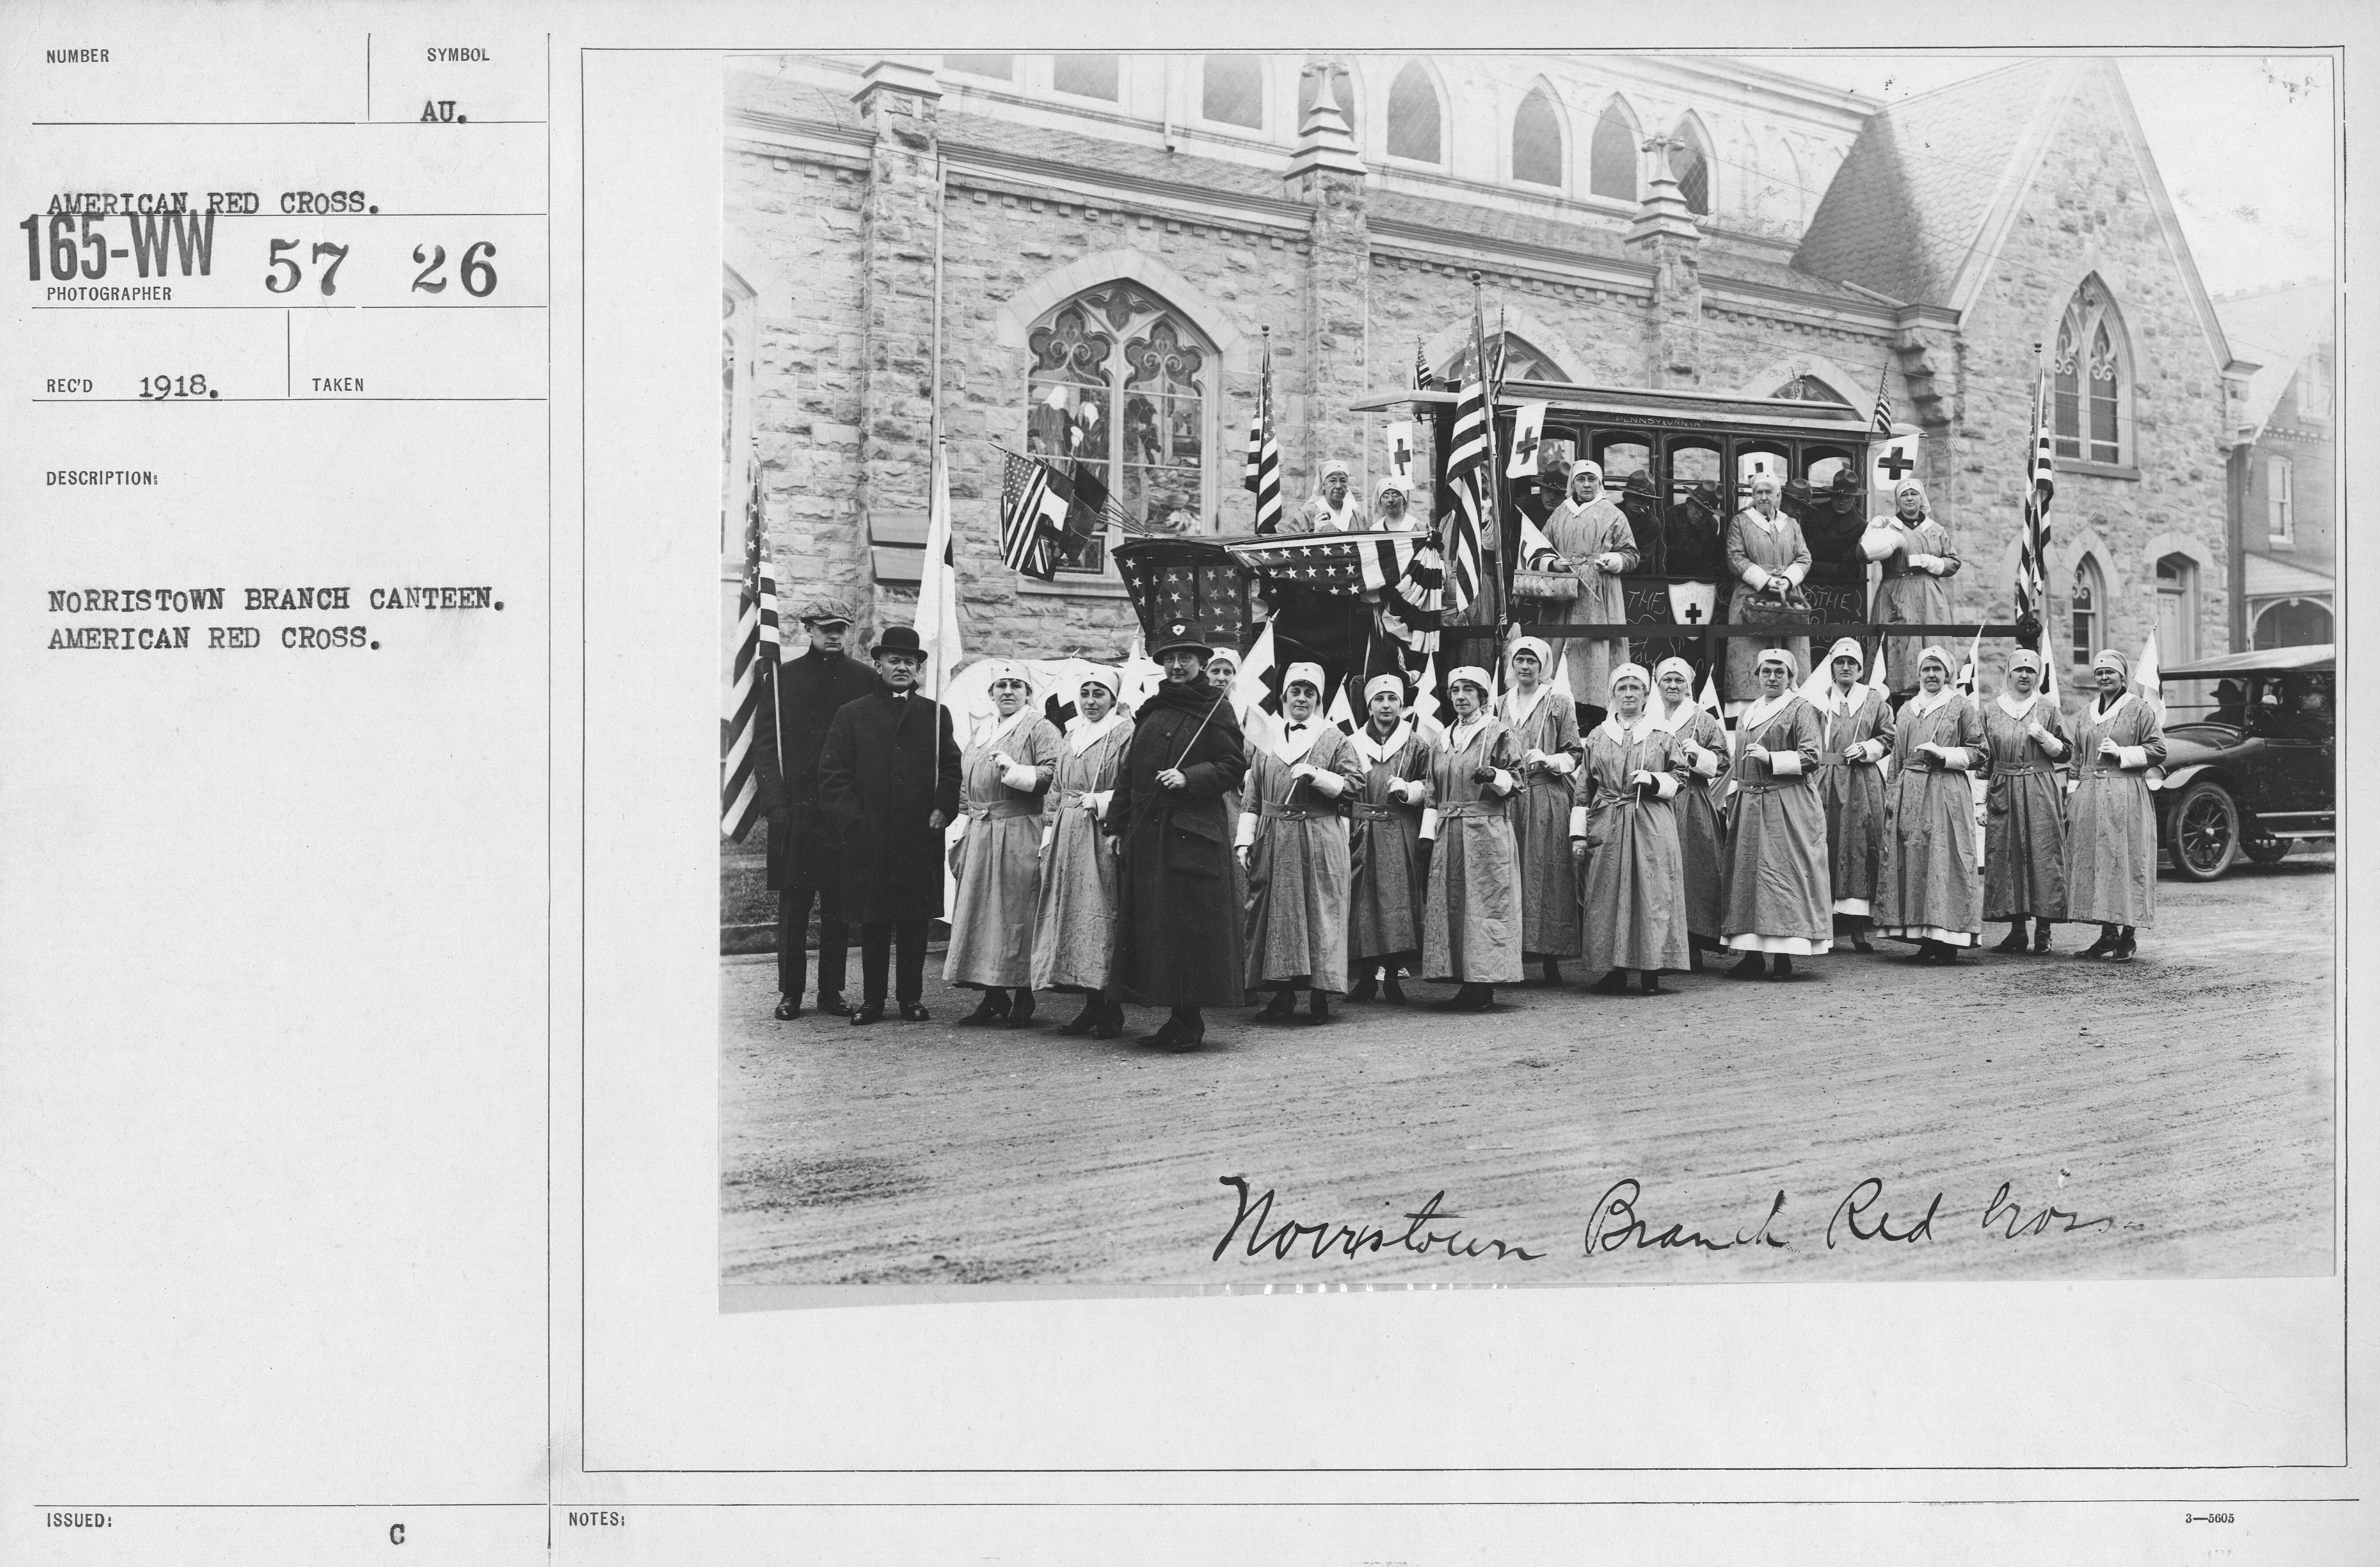 American Red Cross - Groups - Norristown Branch Canteen. American Red Cross